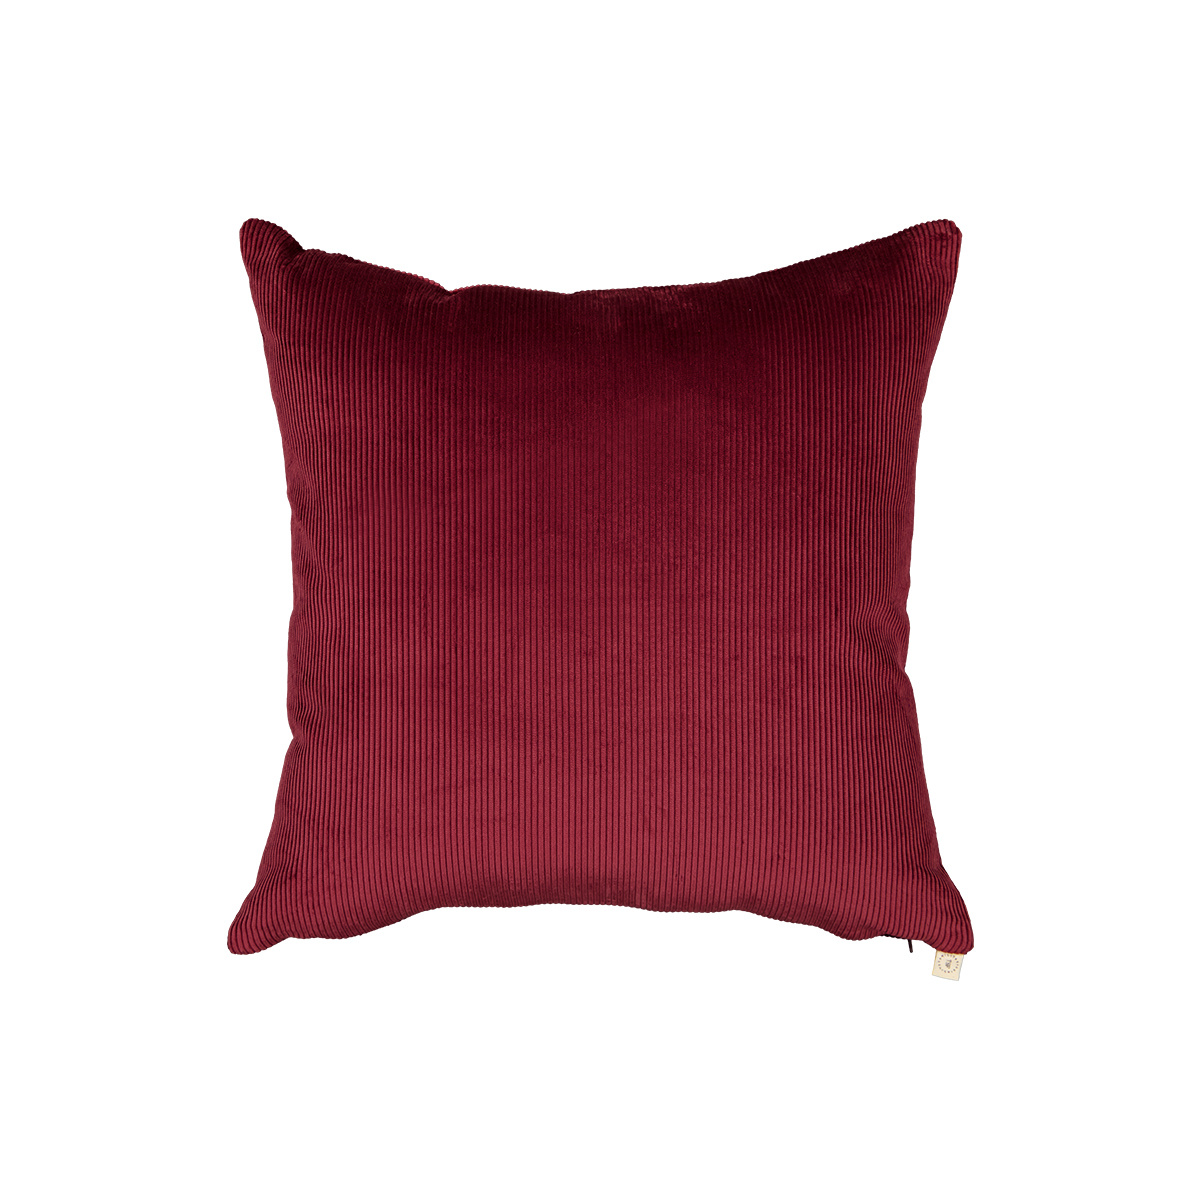 Carino plum corduroy cushion